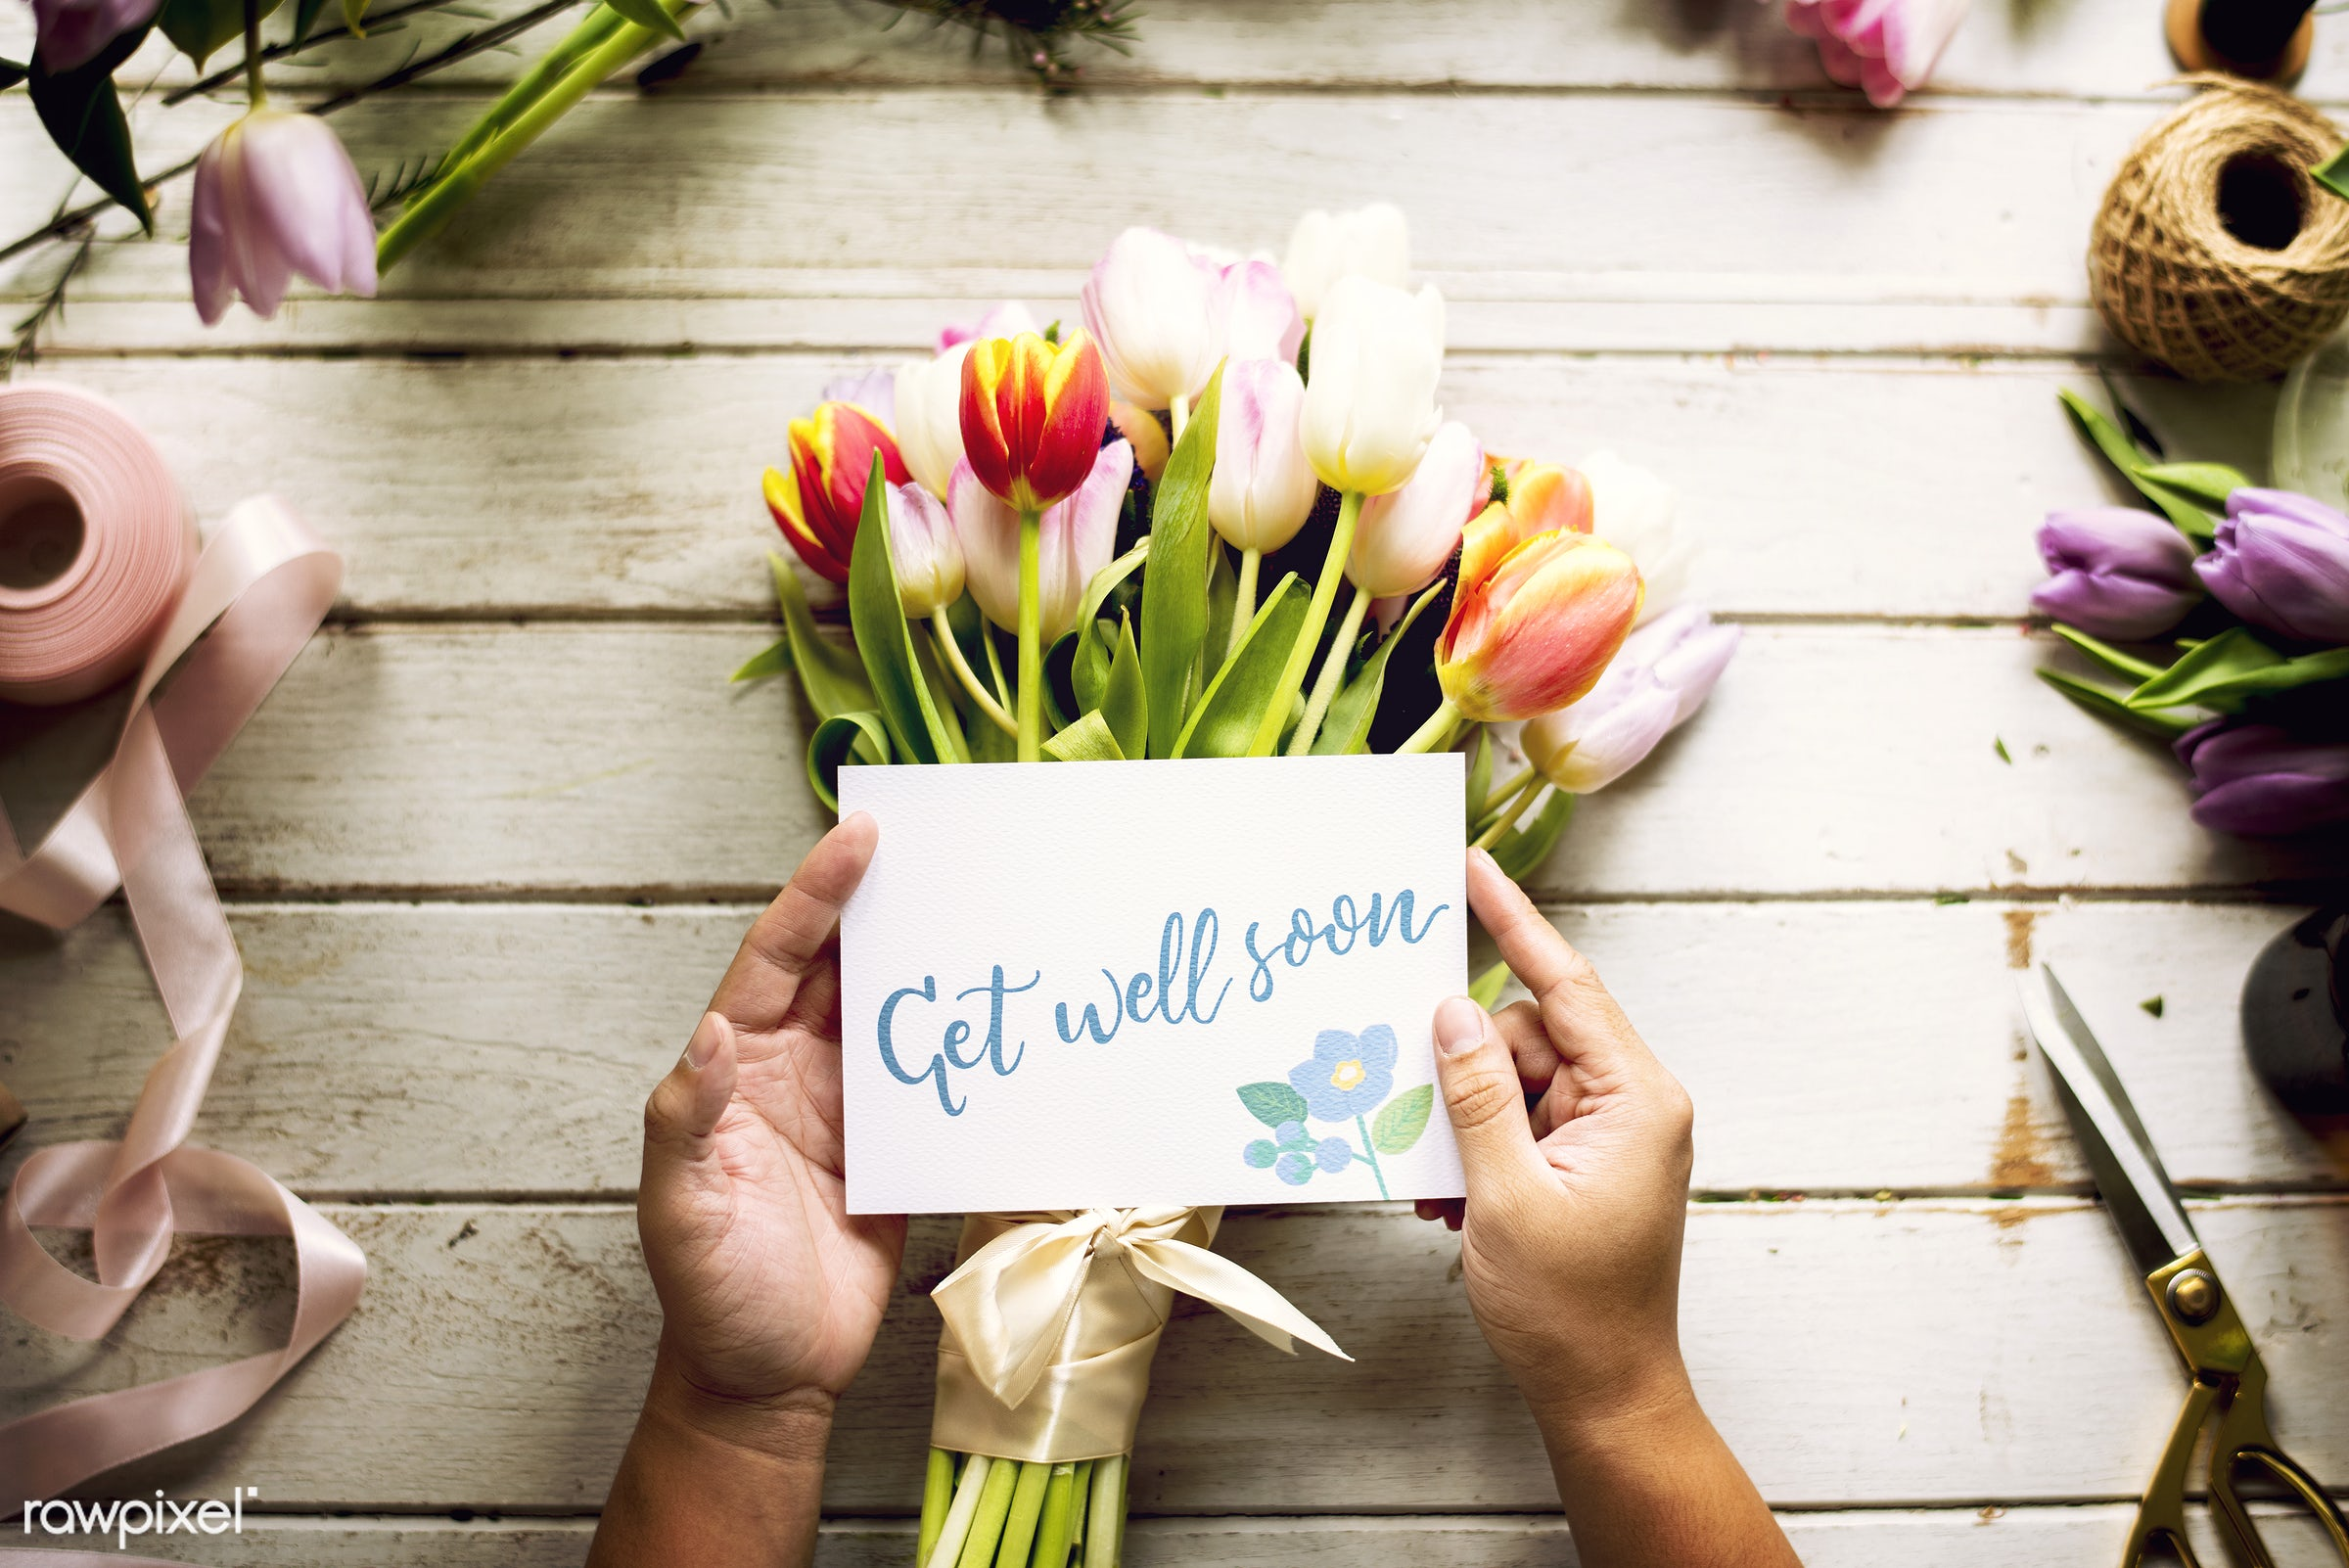 detail, person, wish, show, people, nature, card, flowers, get, greeting, hold, refreshment, florist, present, arrangement,...